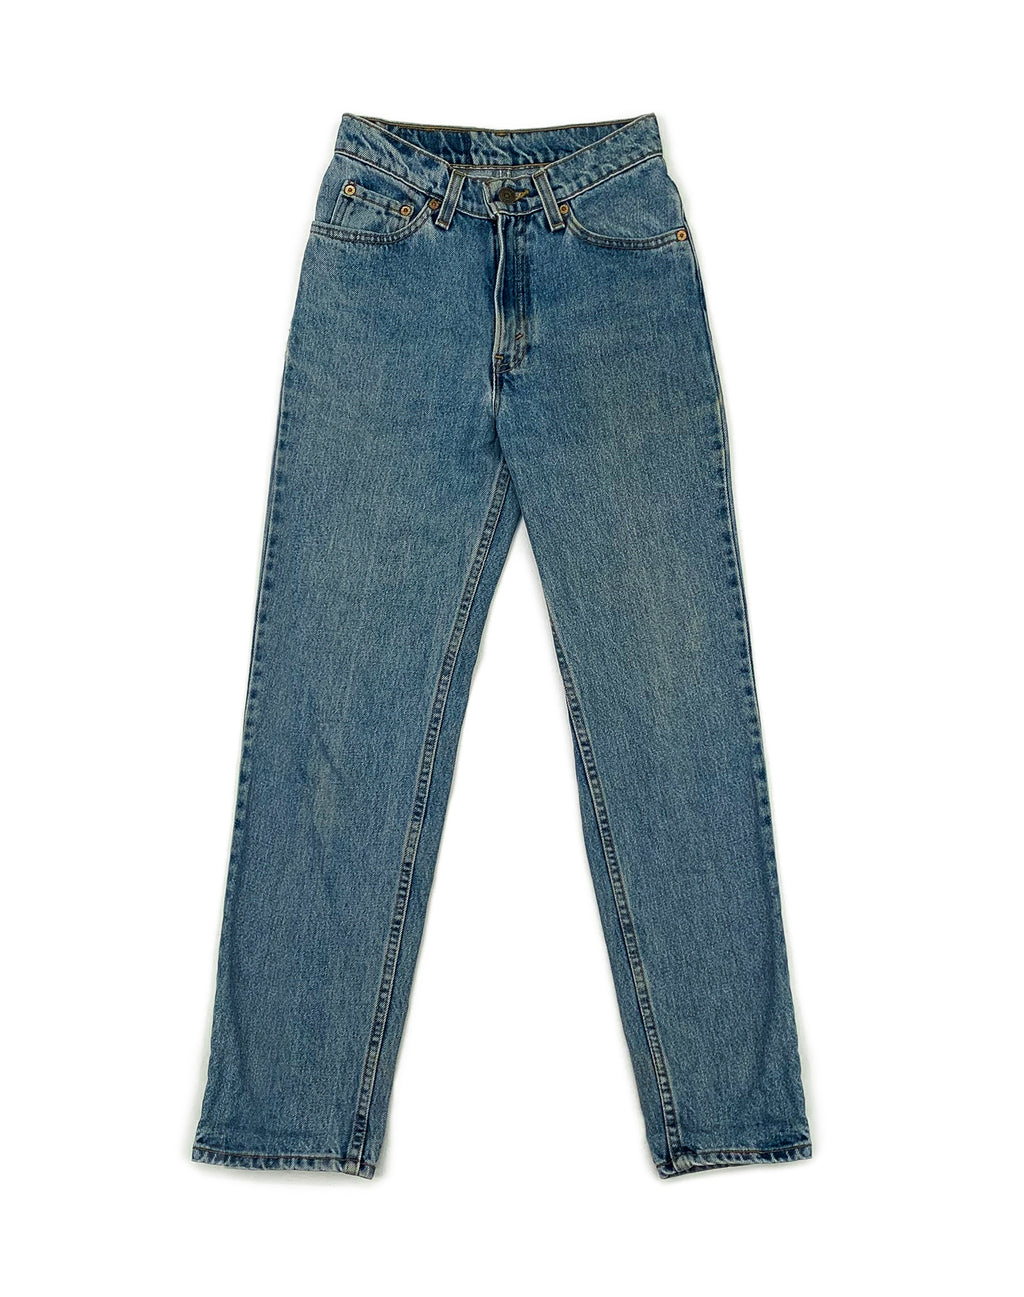 LEVI'S LIGHT BLUE 512 JEANS